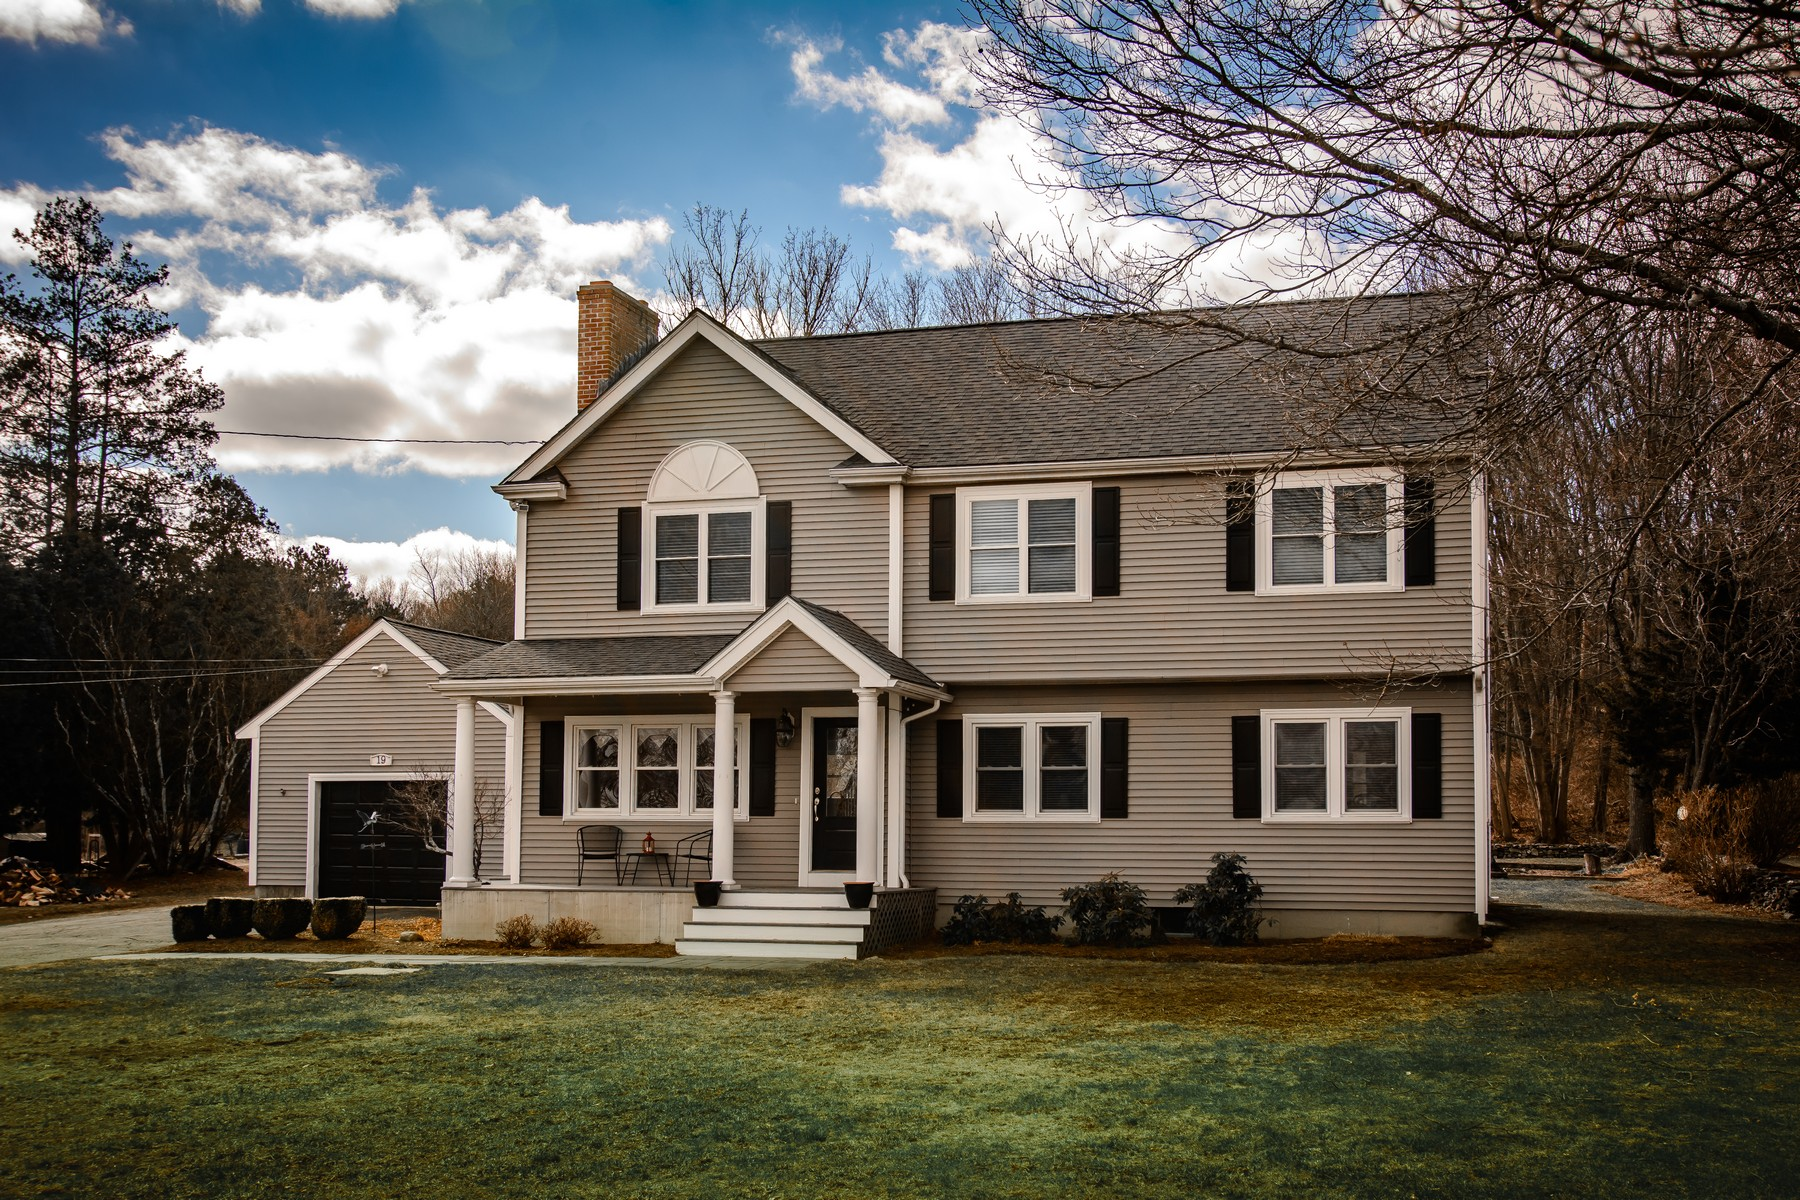 Single Family Home for Sale at Charming Garrison Colonial 19 Warren Street Westborough, Massachusetts 01581 United States